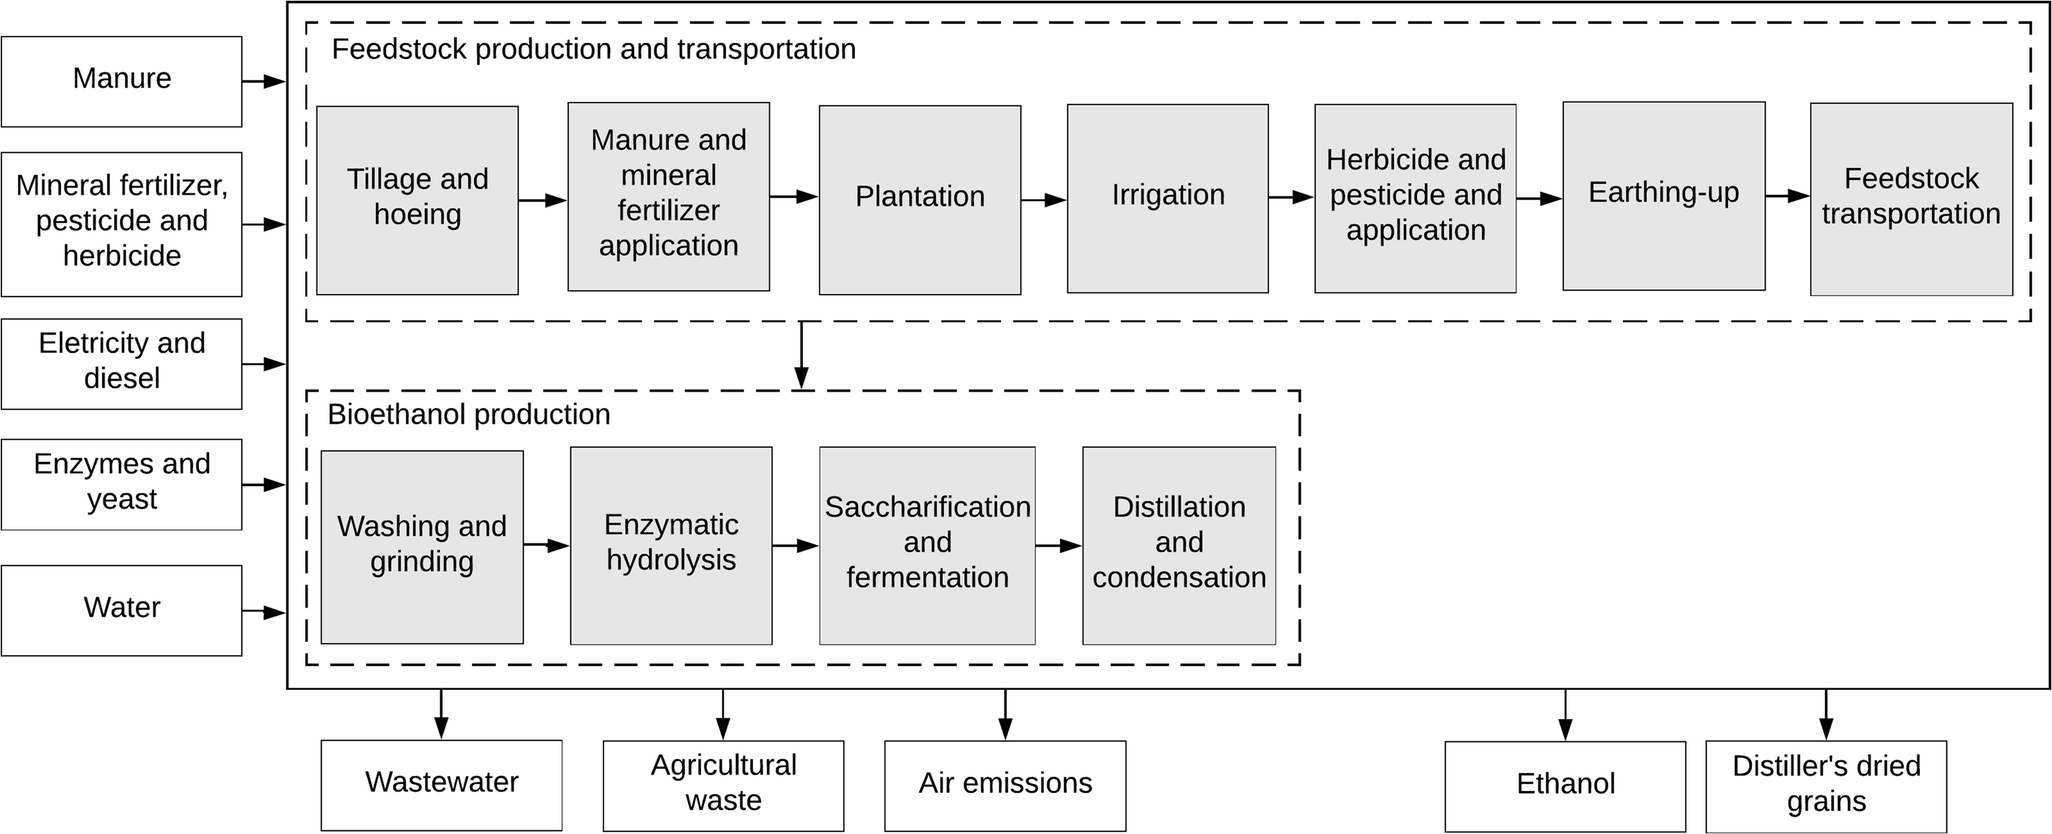 Life Cycle Assessment Of Bioethanol Production From Sweet Potato Biosimapro Open Image In New Window